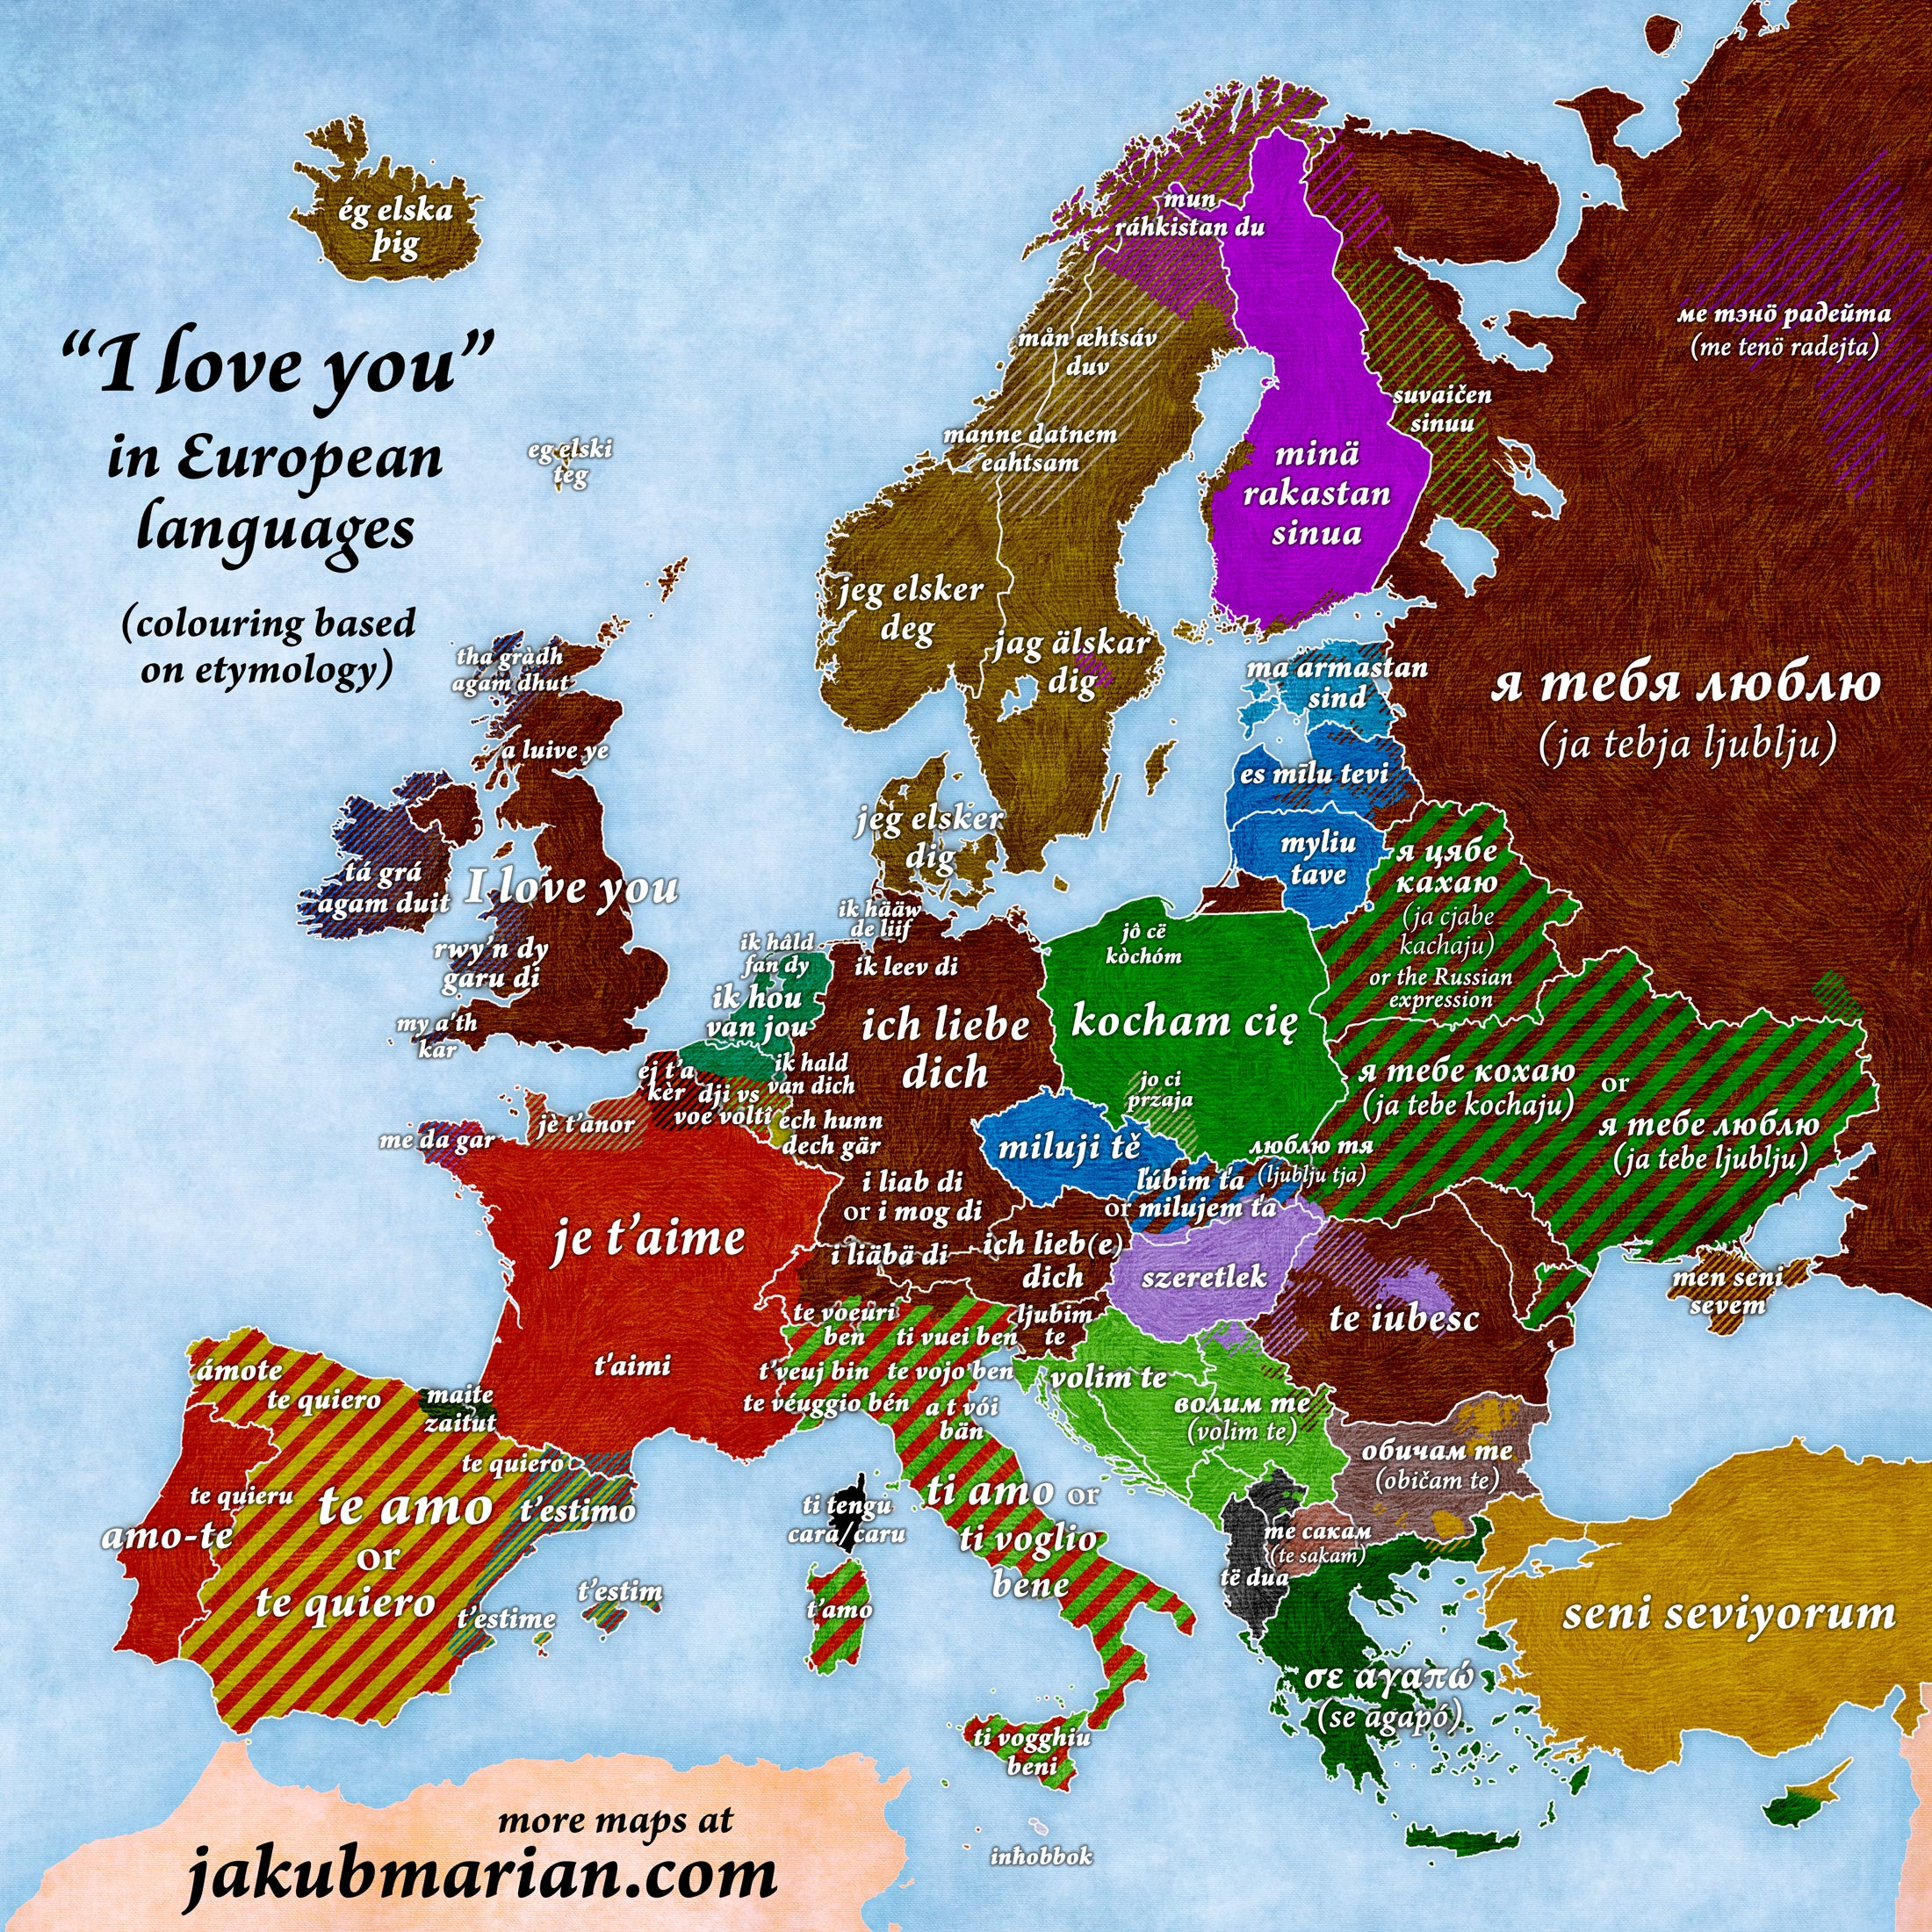 The map showing how to say I love you